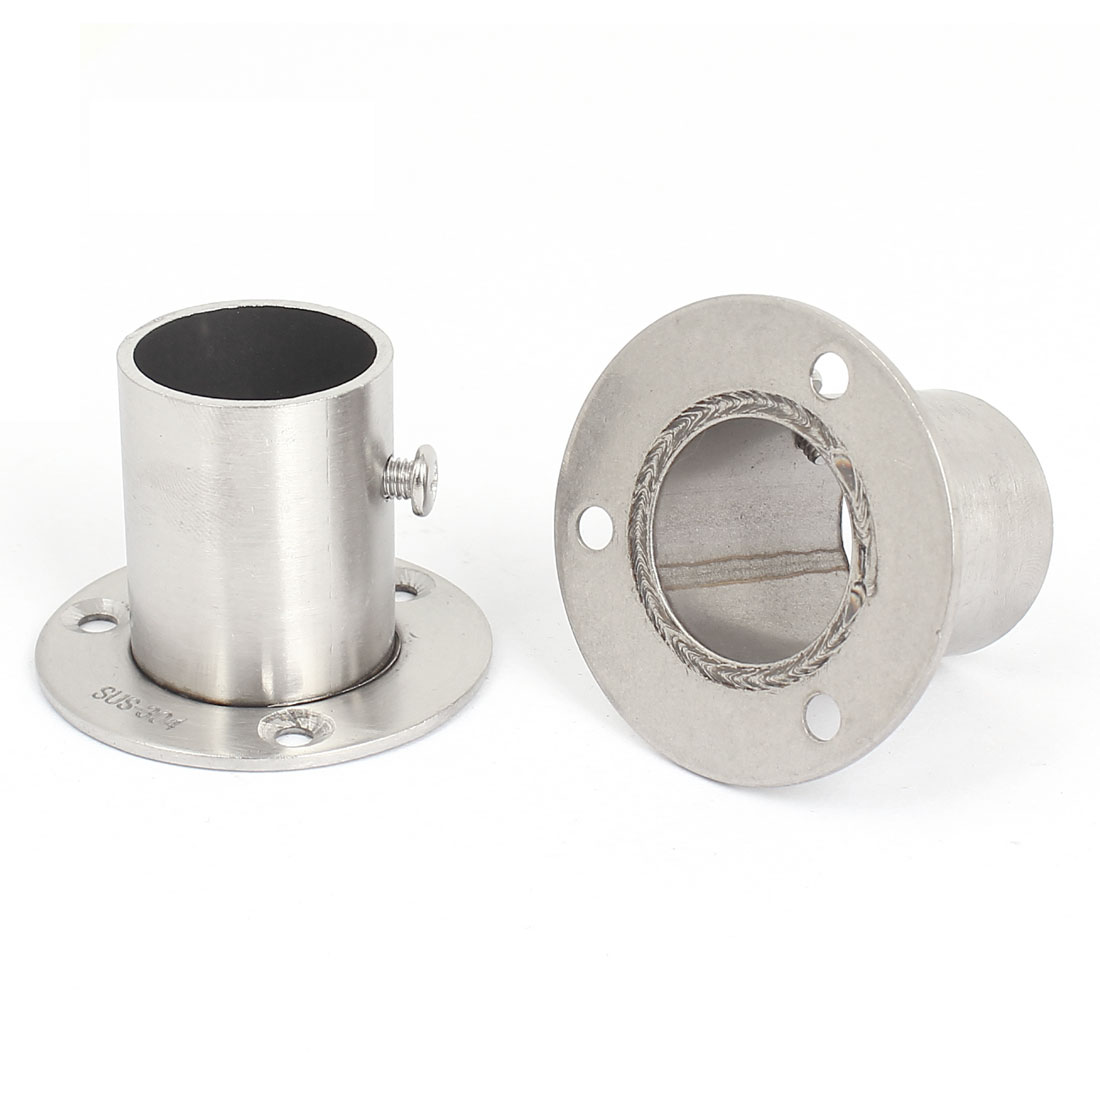 2pcs Wardrobe Stainless Steel Rail Rod End Support Bracket Socket for 25mm Tube